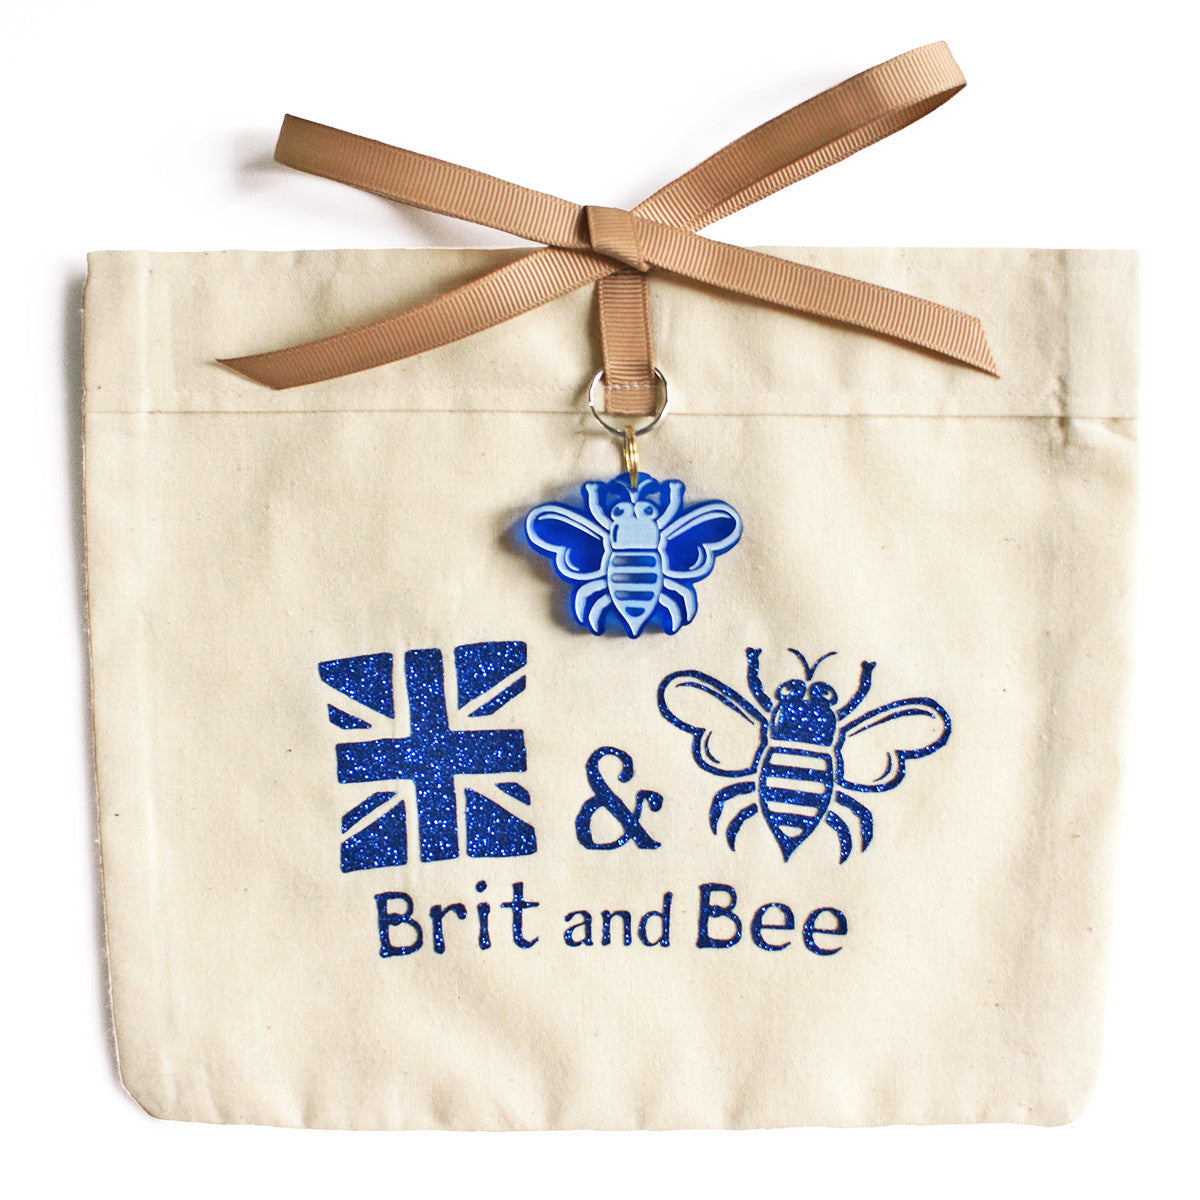 Brit and Bee Sorority Logo Ornament - Sigma Delta Tau